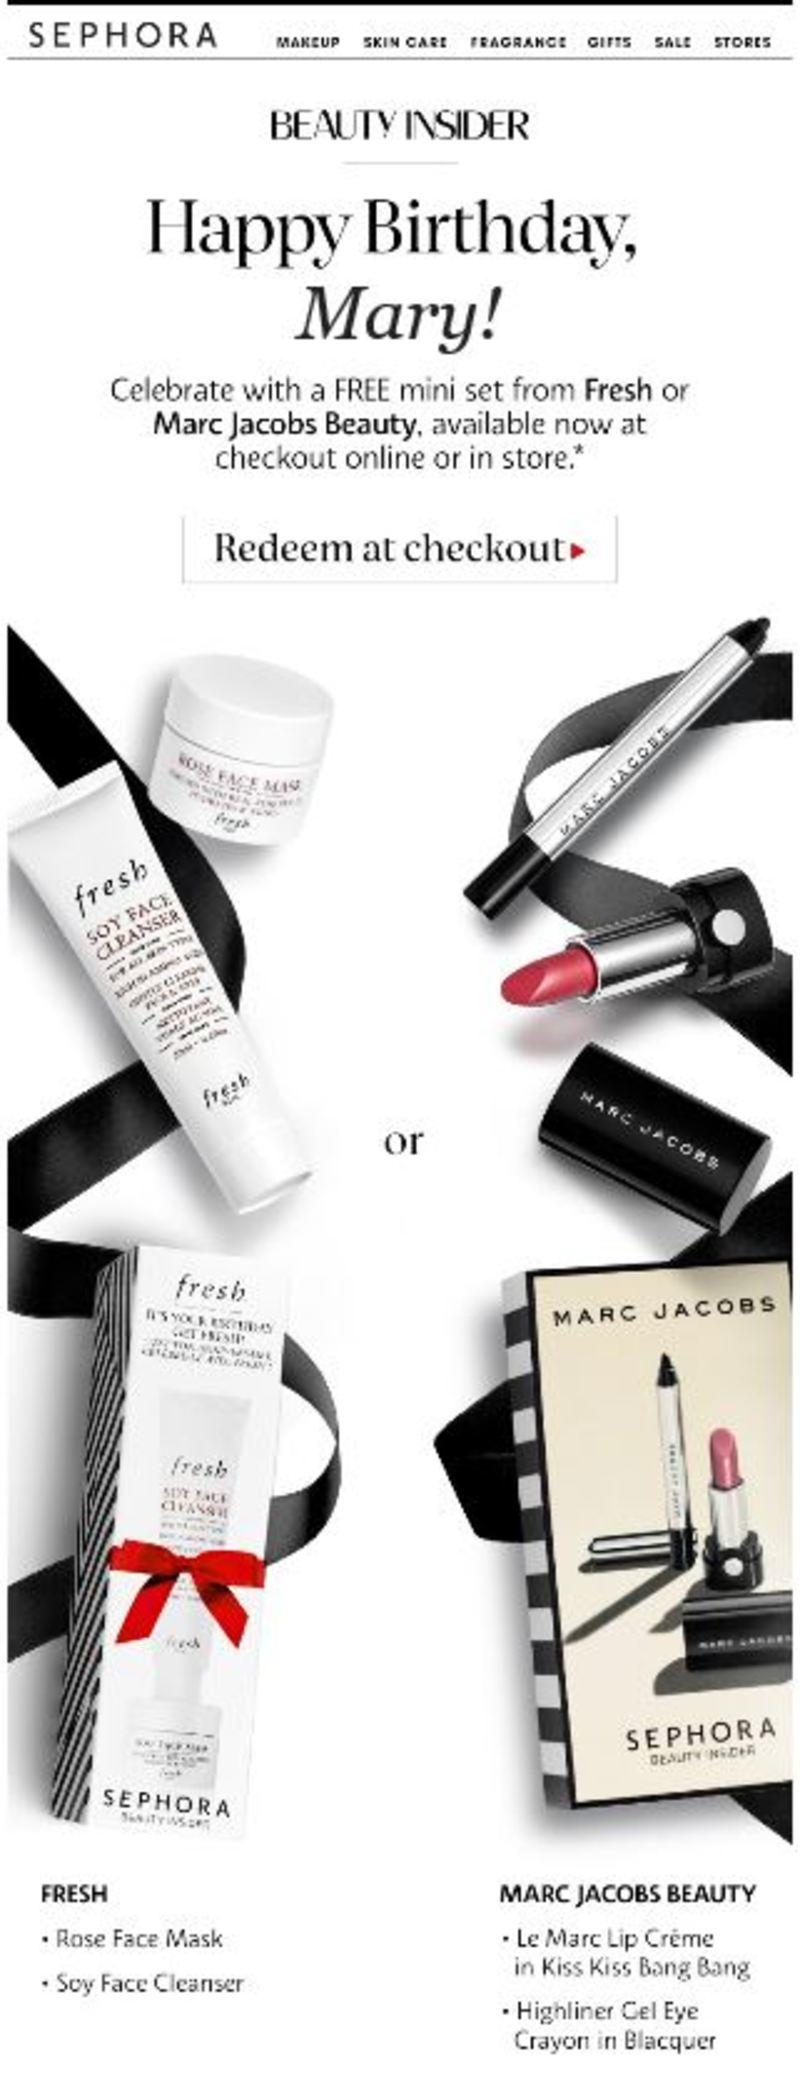 sephora targeted email marketing